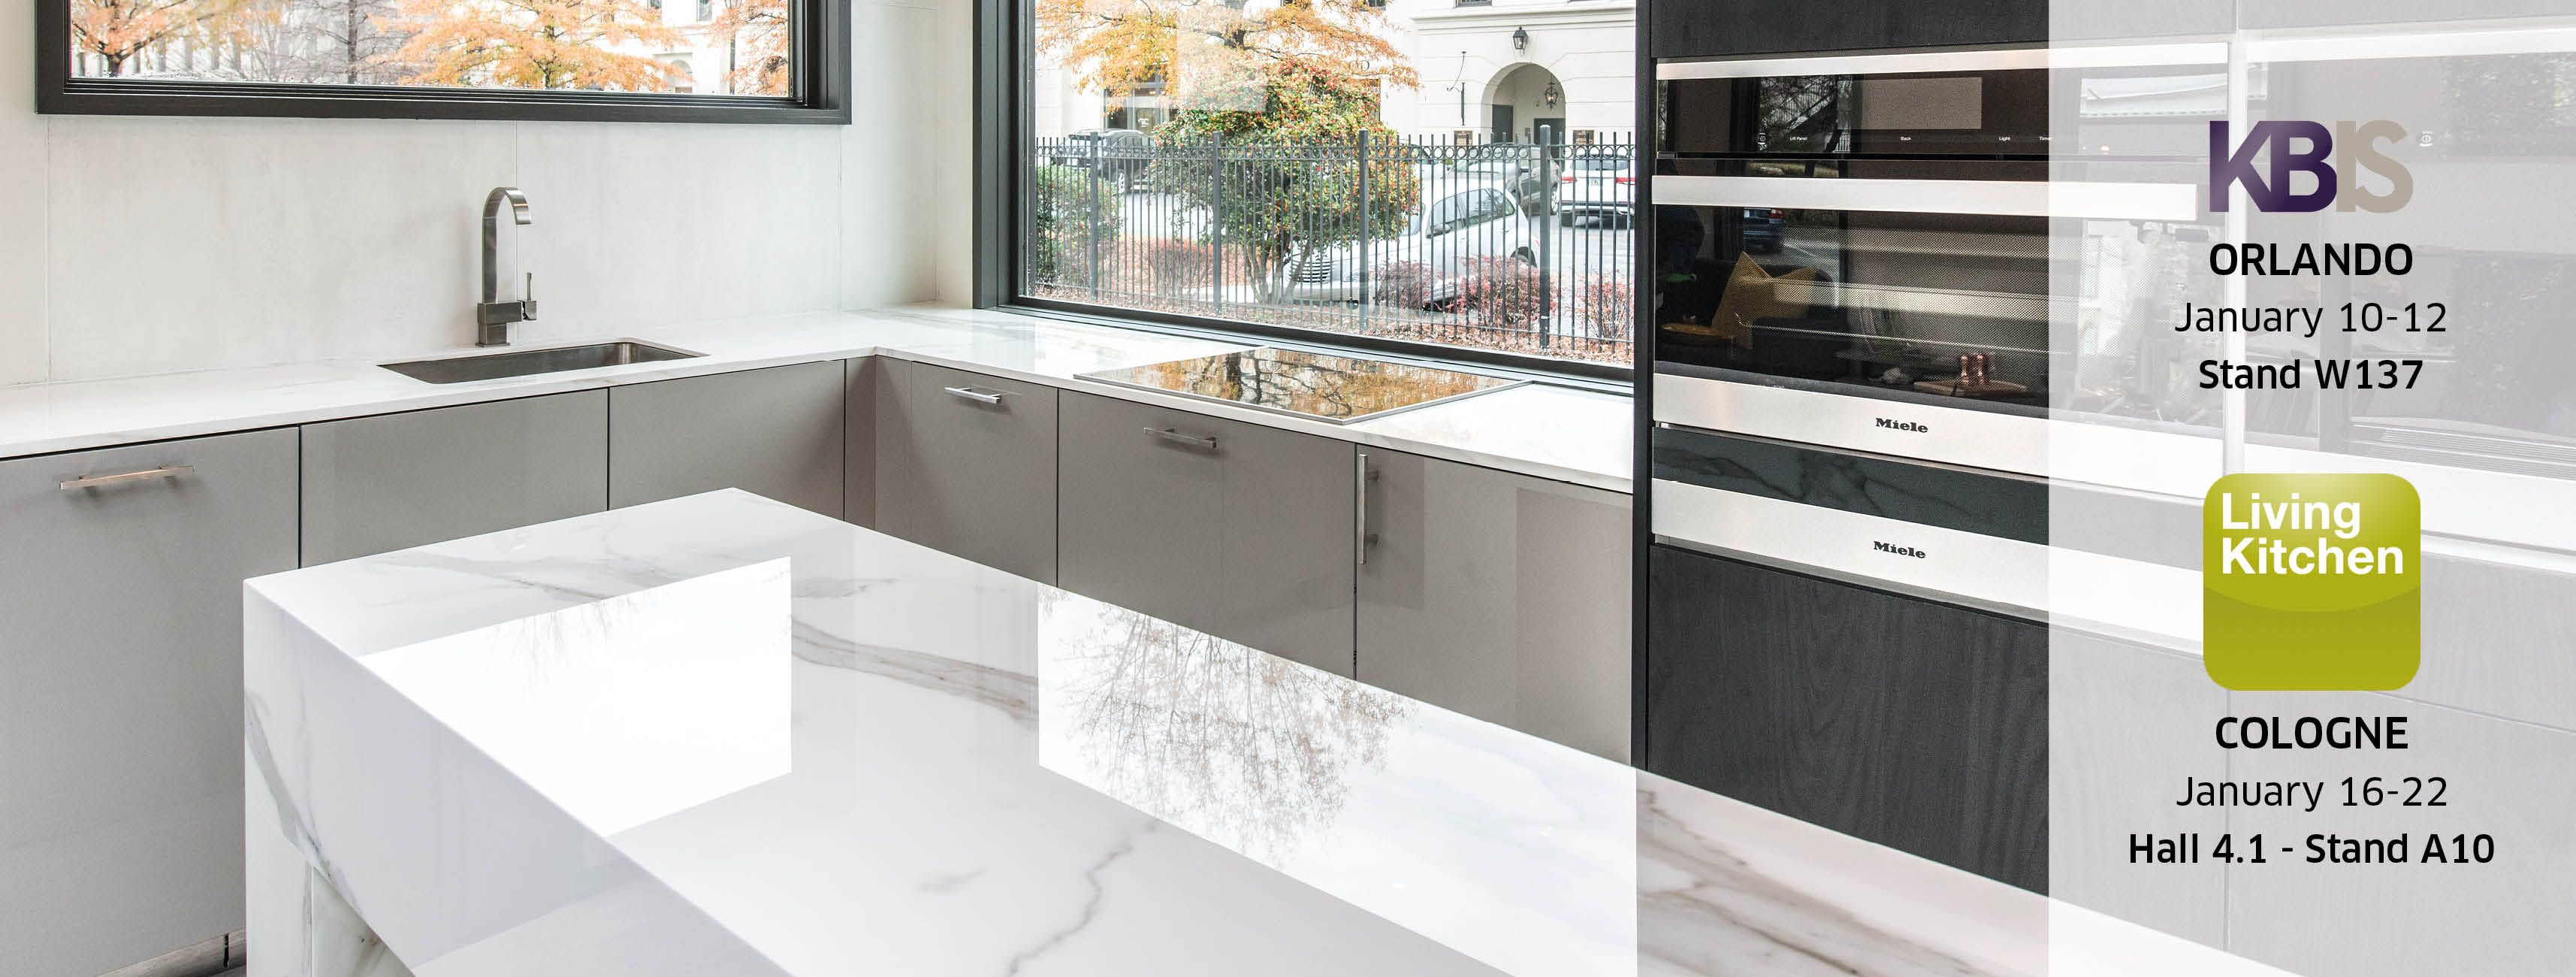 ... the dates of our two upcoming trade shows: KBIS in Orlando (USA) and  Living kitchen in Cologne (Germany). Stay tuned for seeing amazing Neolith  booths.